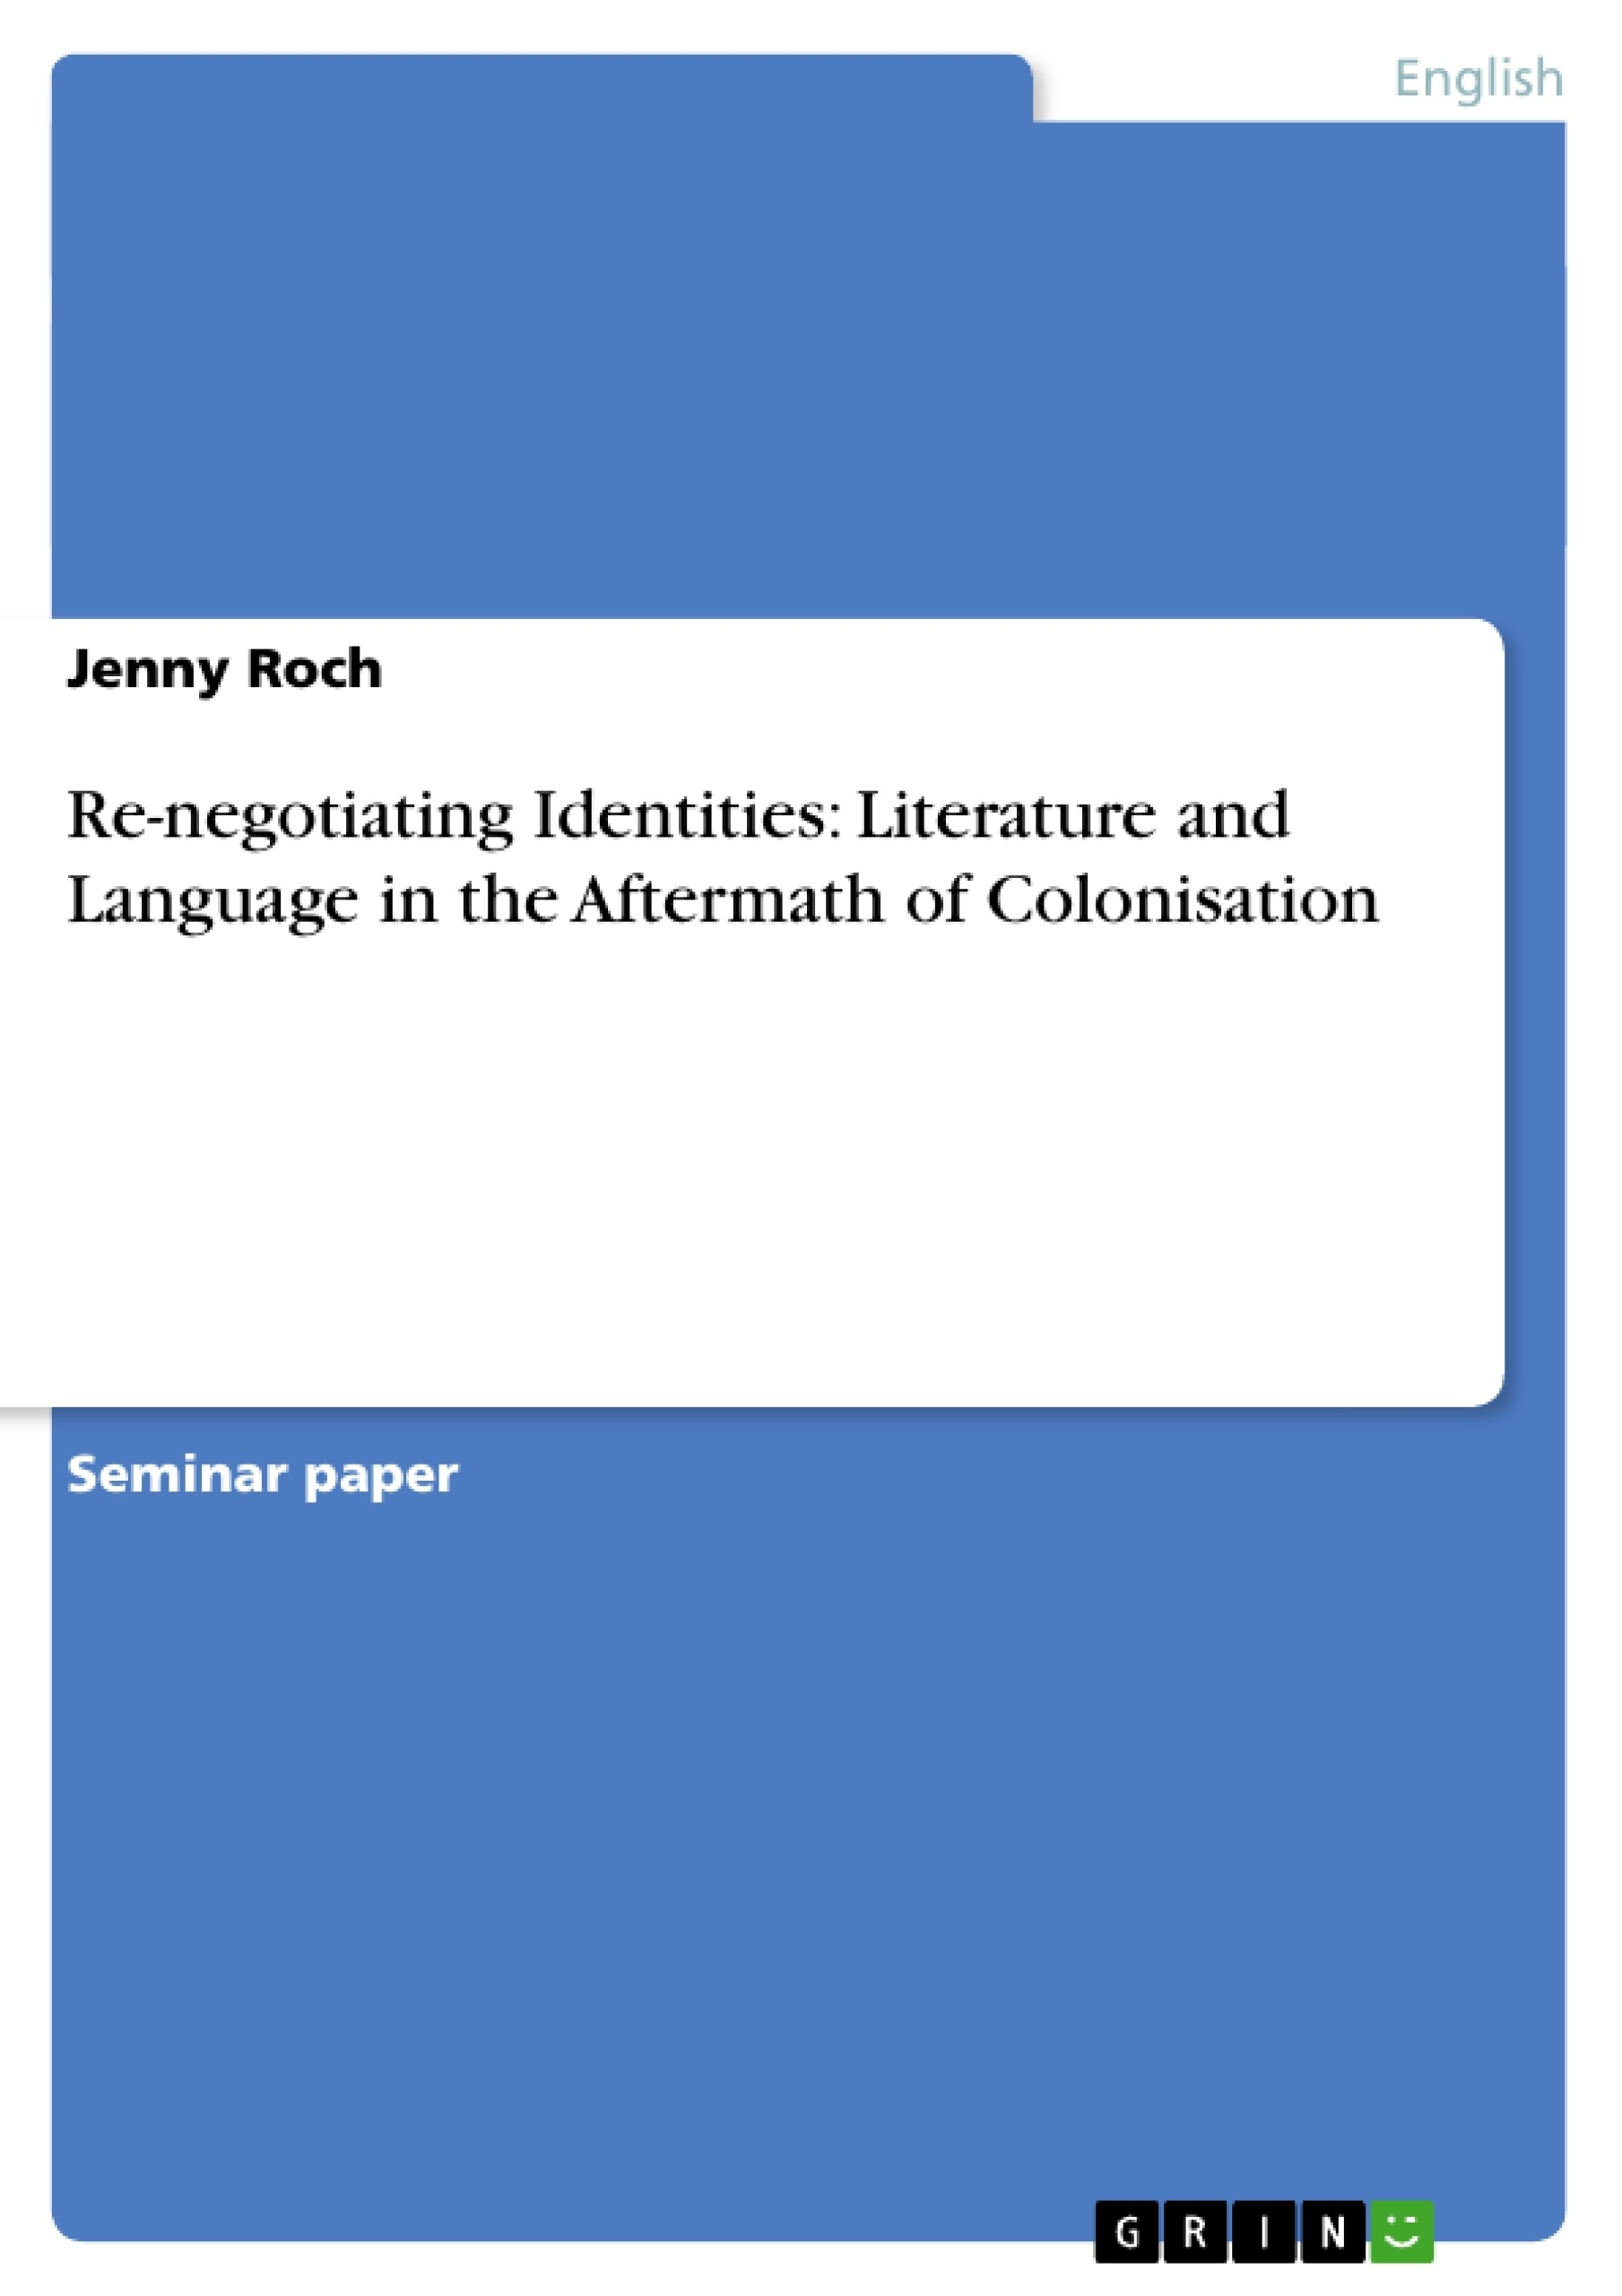 Title: Re-negotiating Identities: Literature and Language in the Aftermath of Colonisation